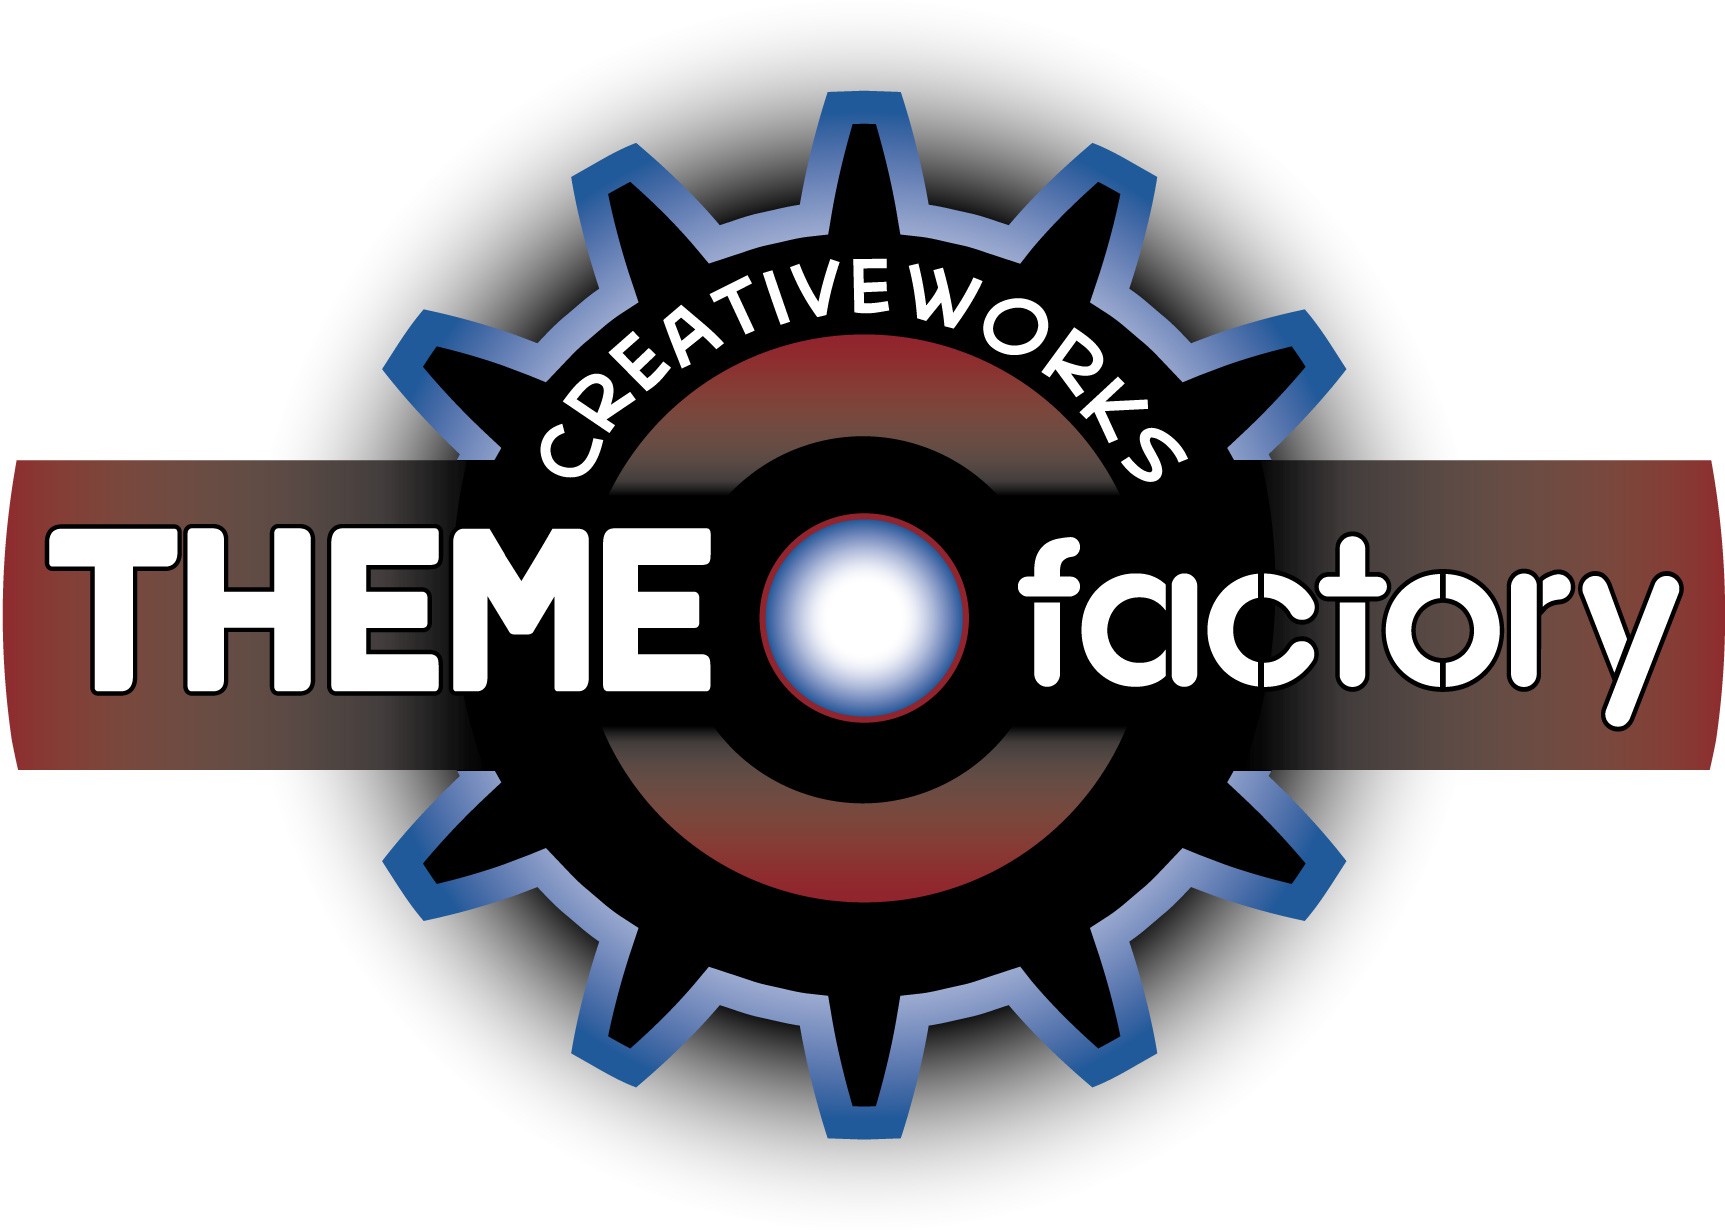 Creative works theme factory